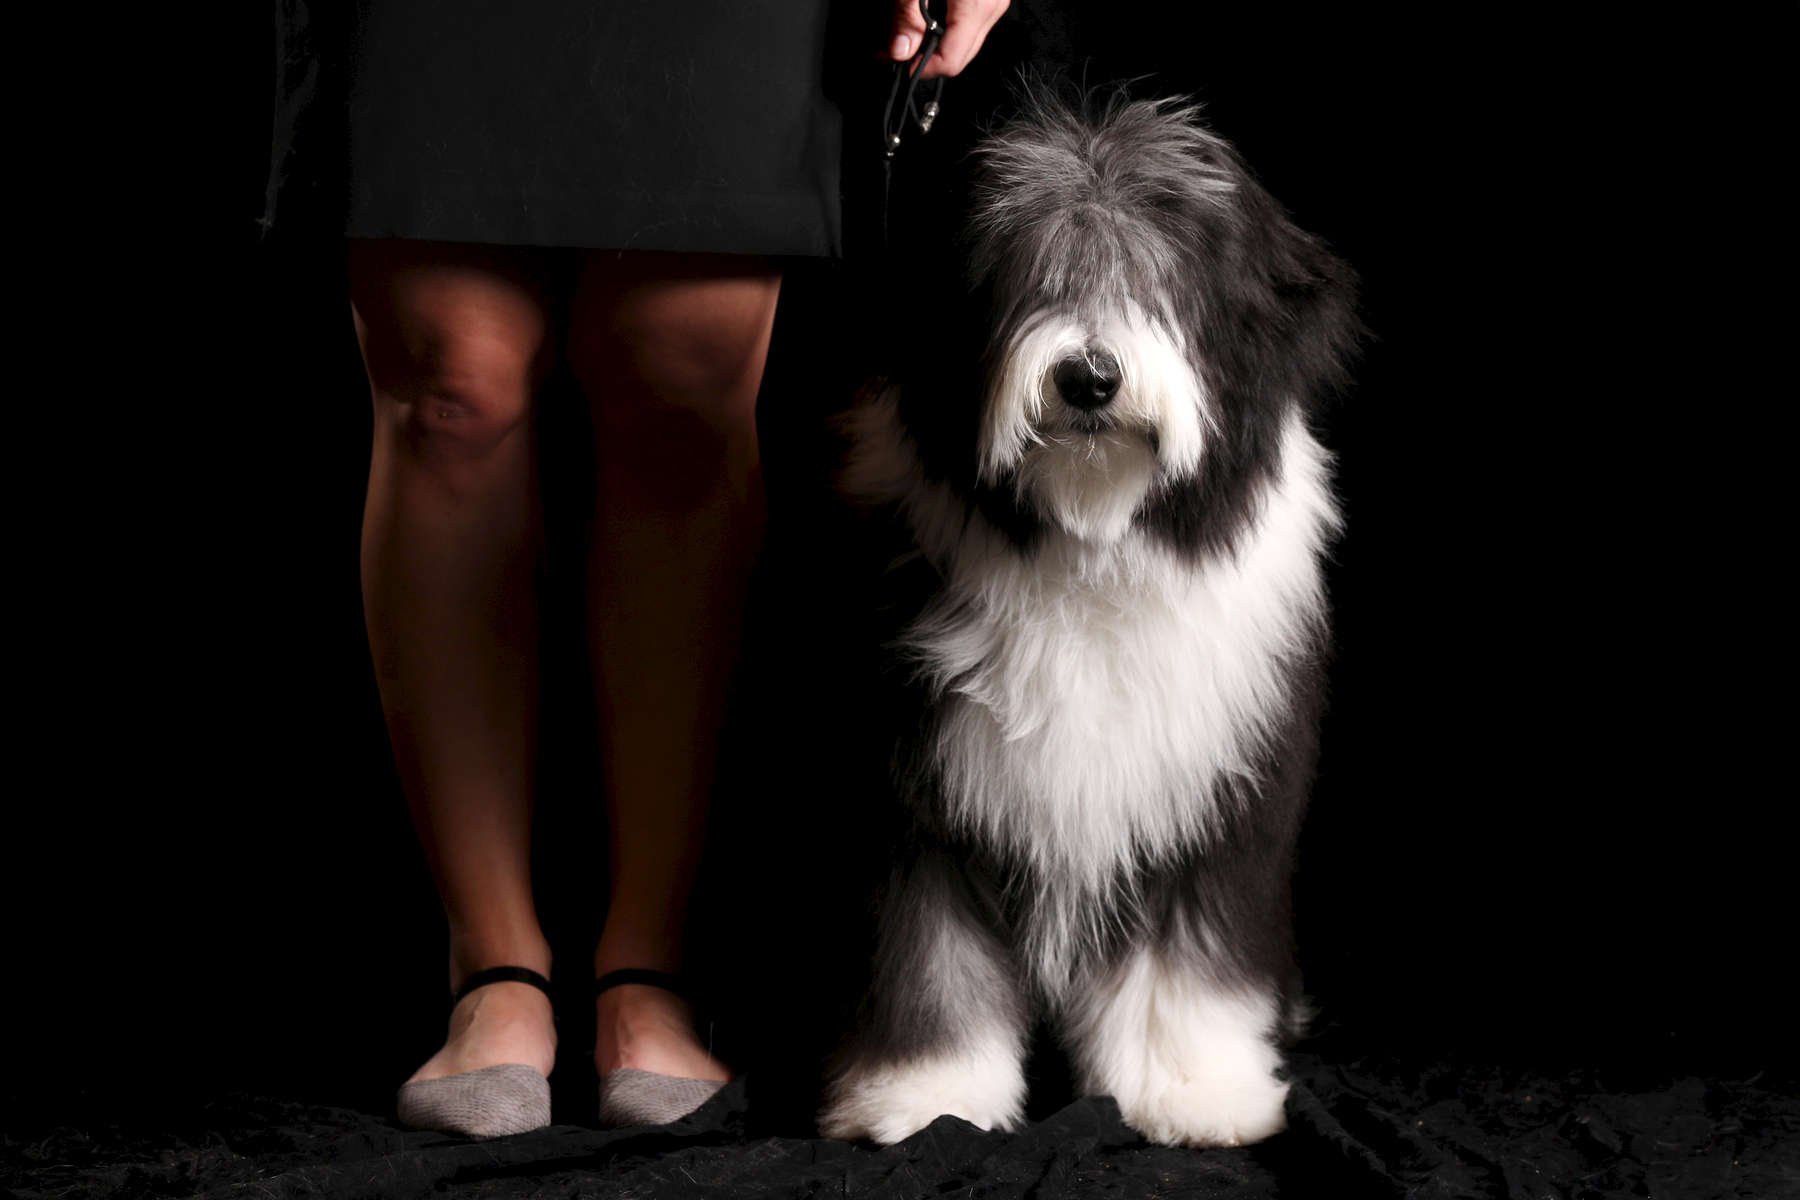 Robby, a 6-month-old bearded collie, shown by Abbie Morrie